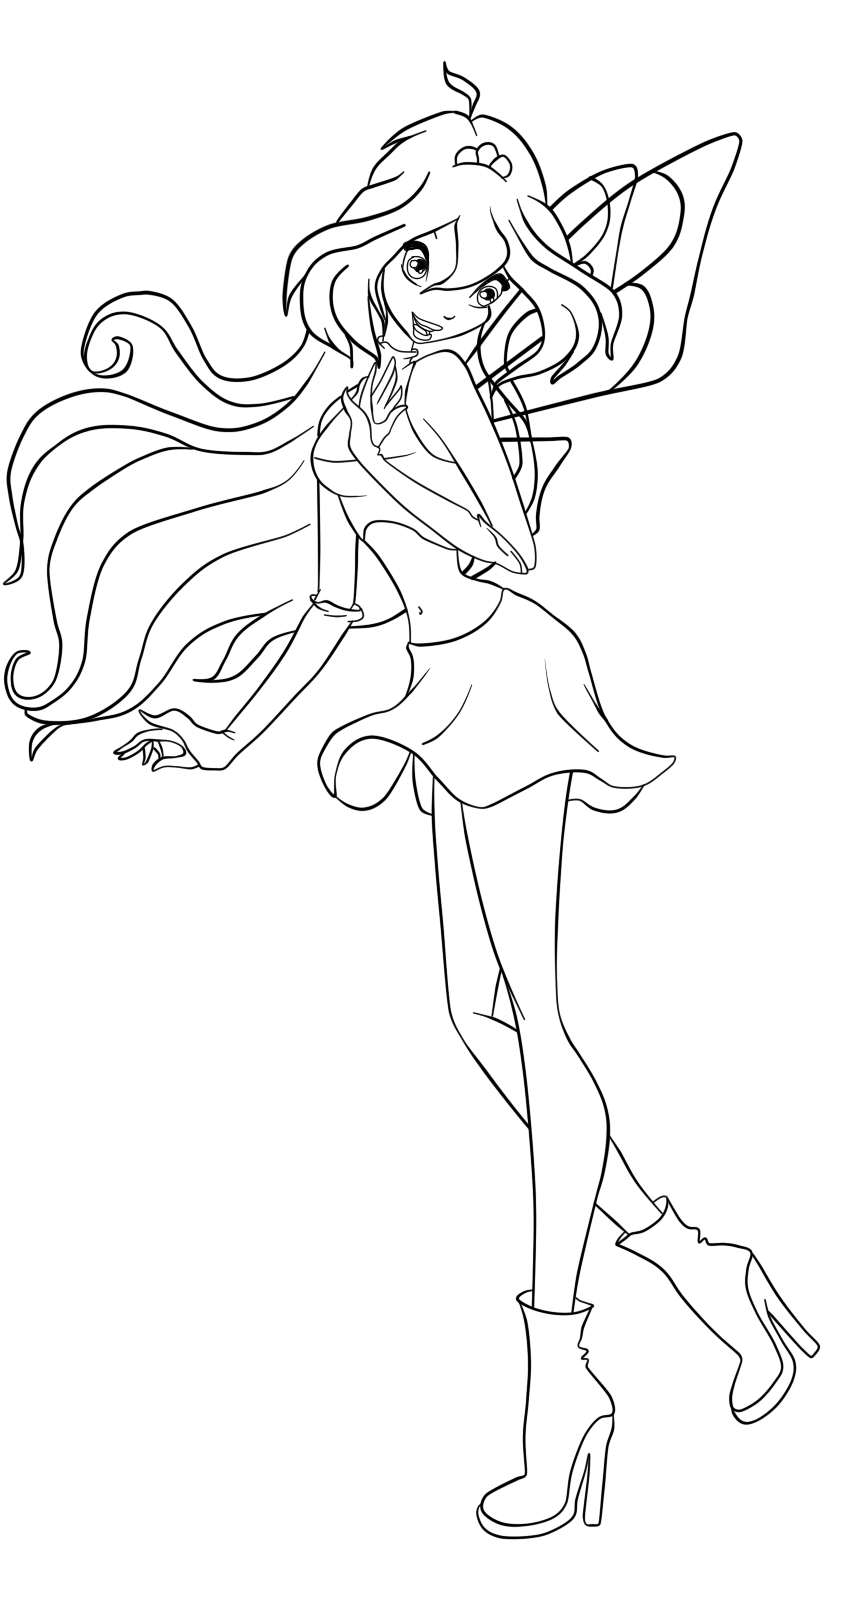 853x1600 Images Of Winx Club Bloom Mermaid Coloring Pages